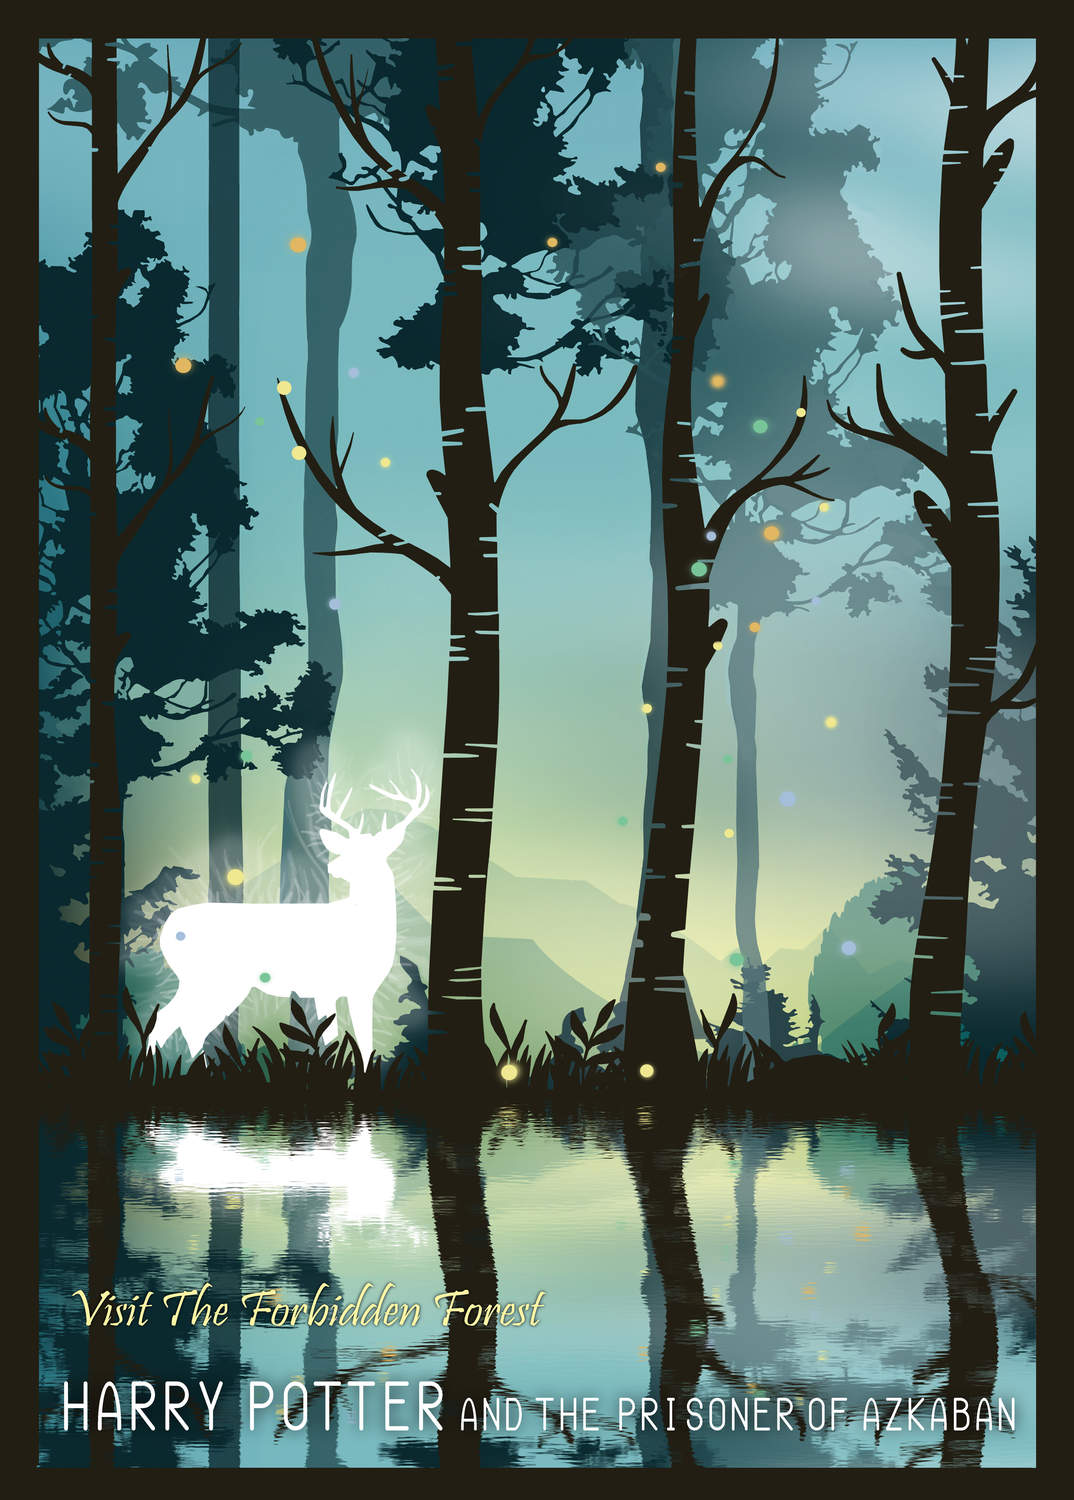 A3 Print - Harry Potter - Visit The Forbidden Forest